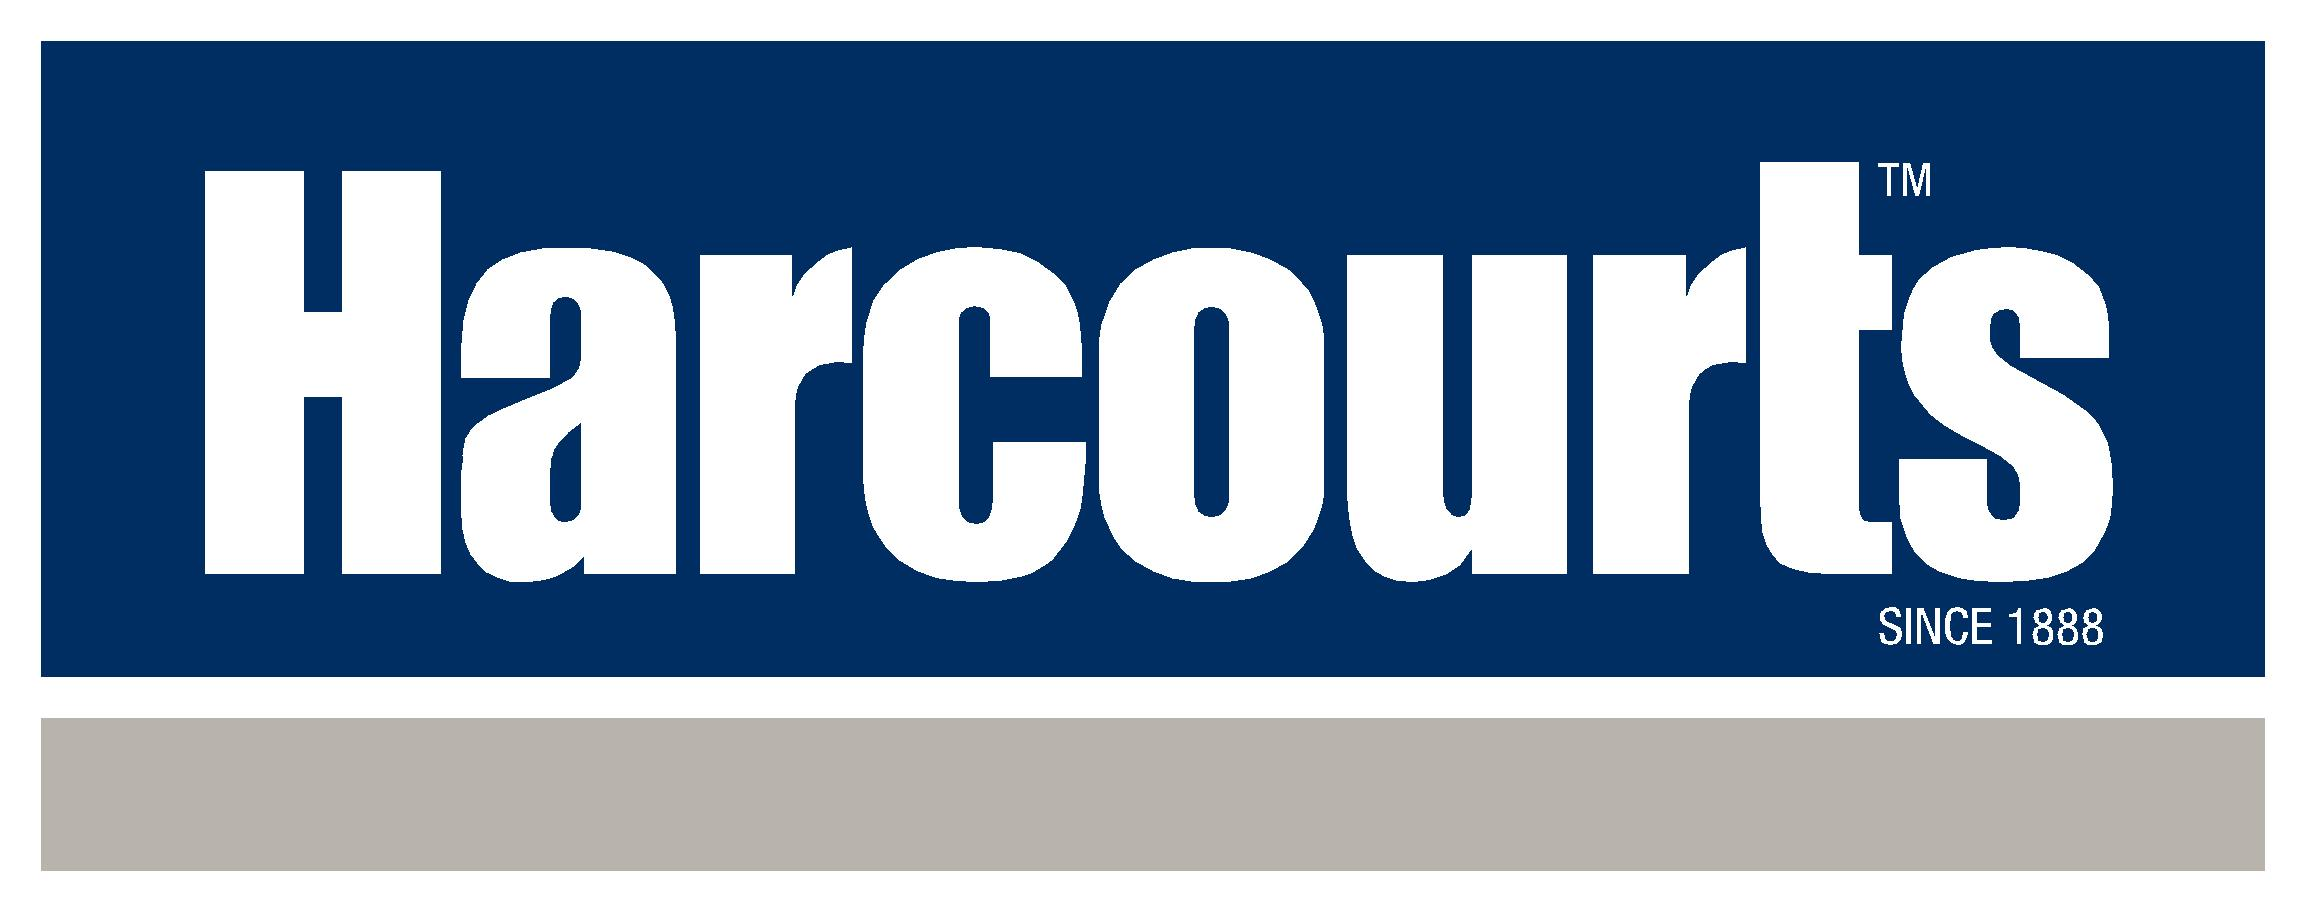 Standard Harcourts Logo 15 Examples of Comprehensive Brand Guidelines